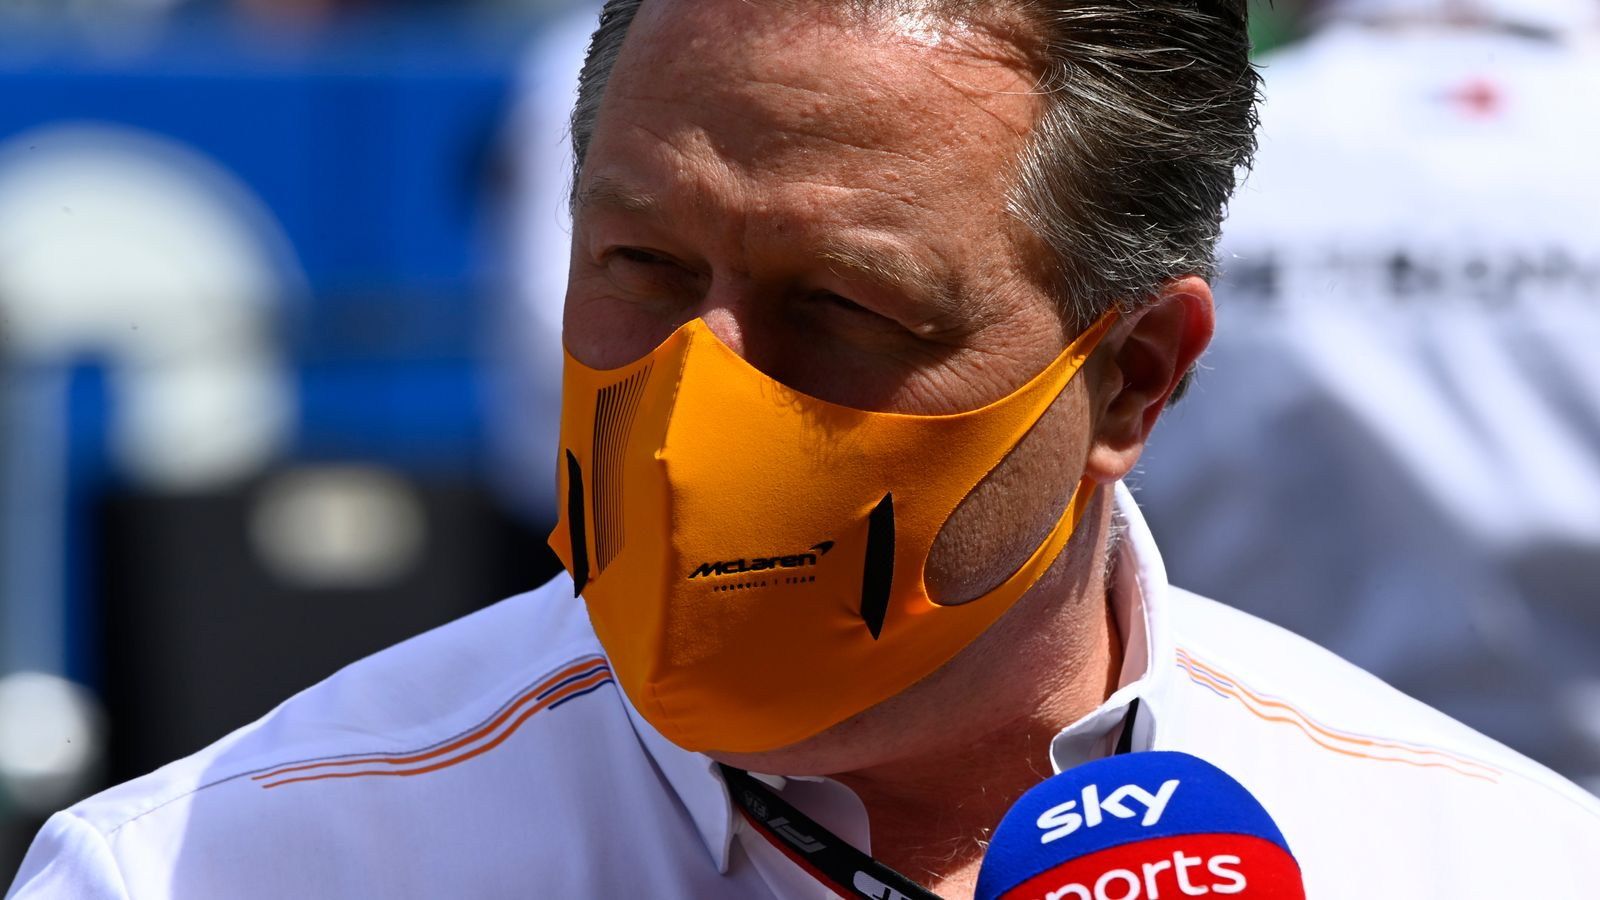 McLaren CEO Zak Brown to miss F1 British GP after testing positive for Covid-19